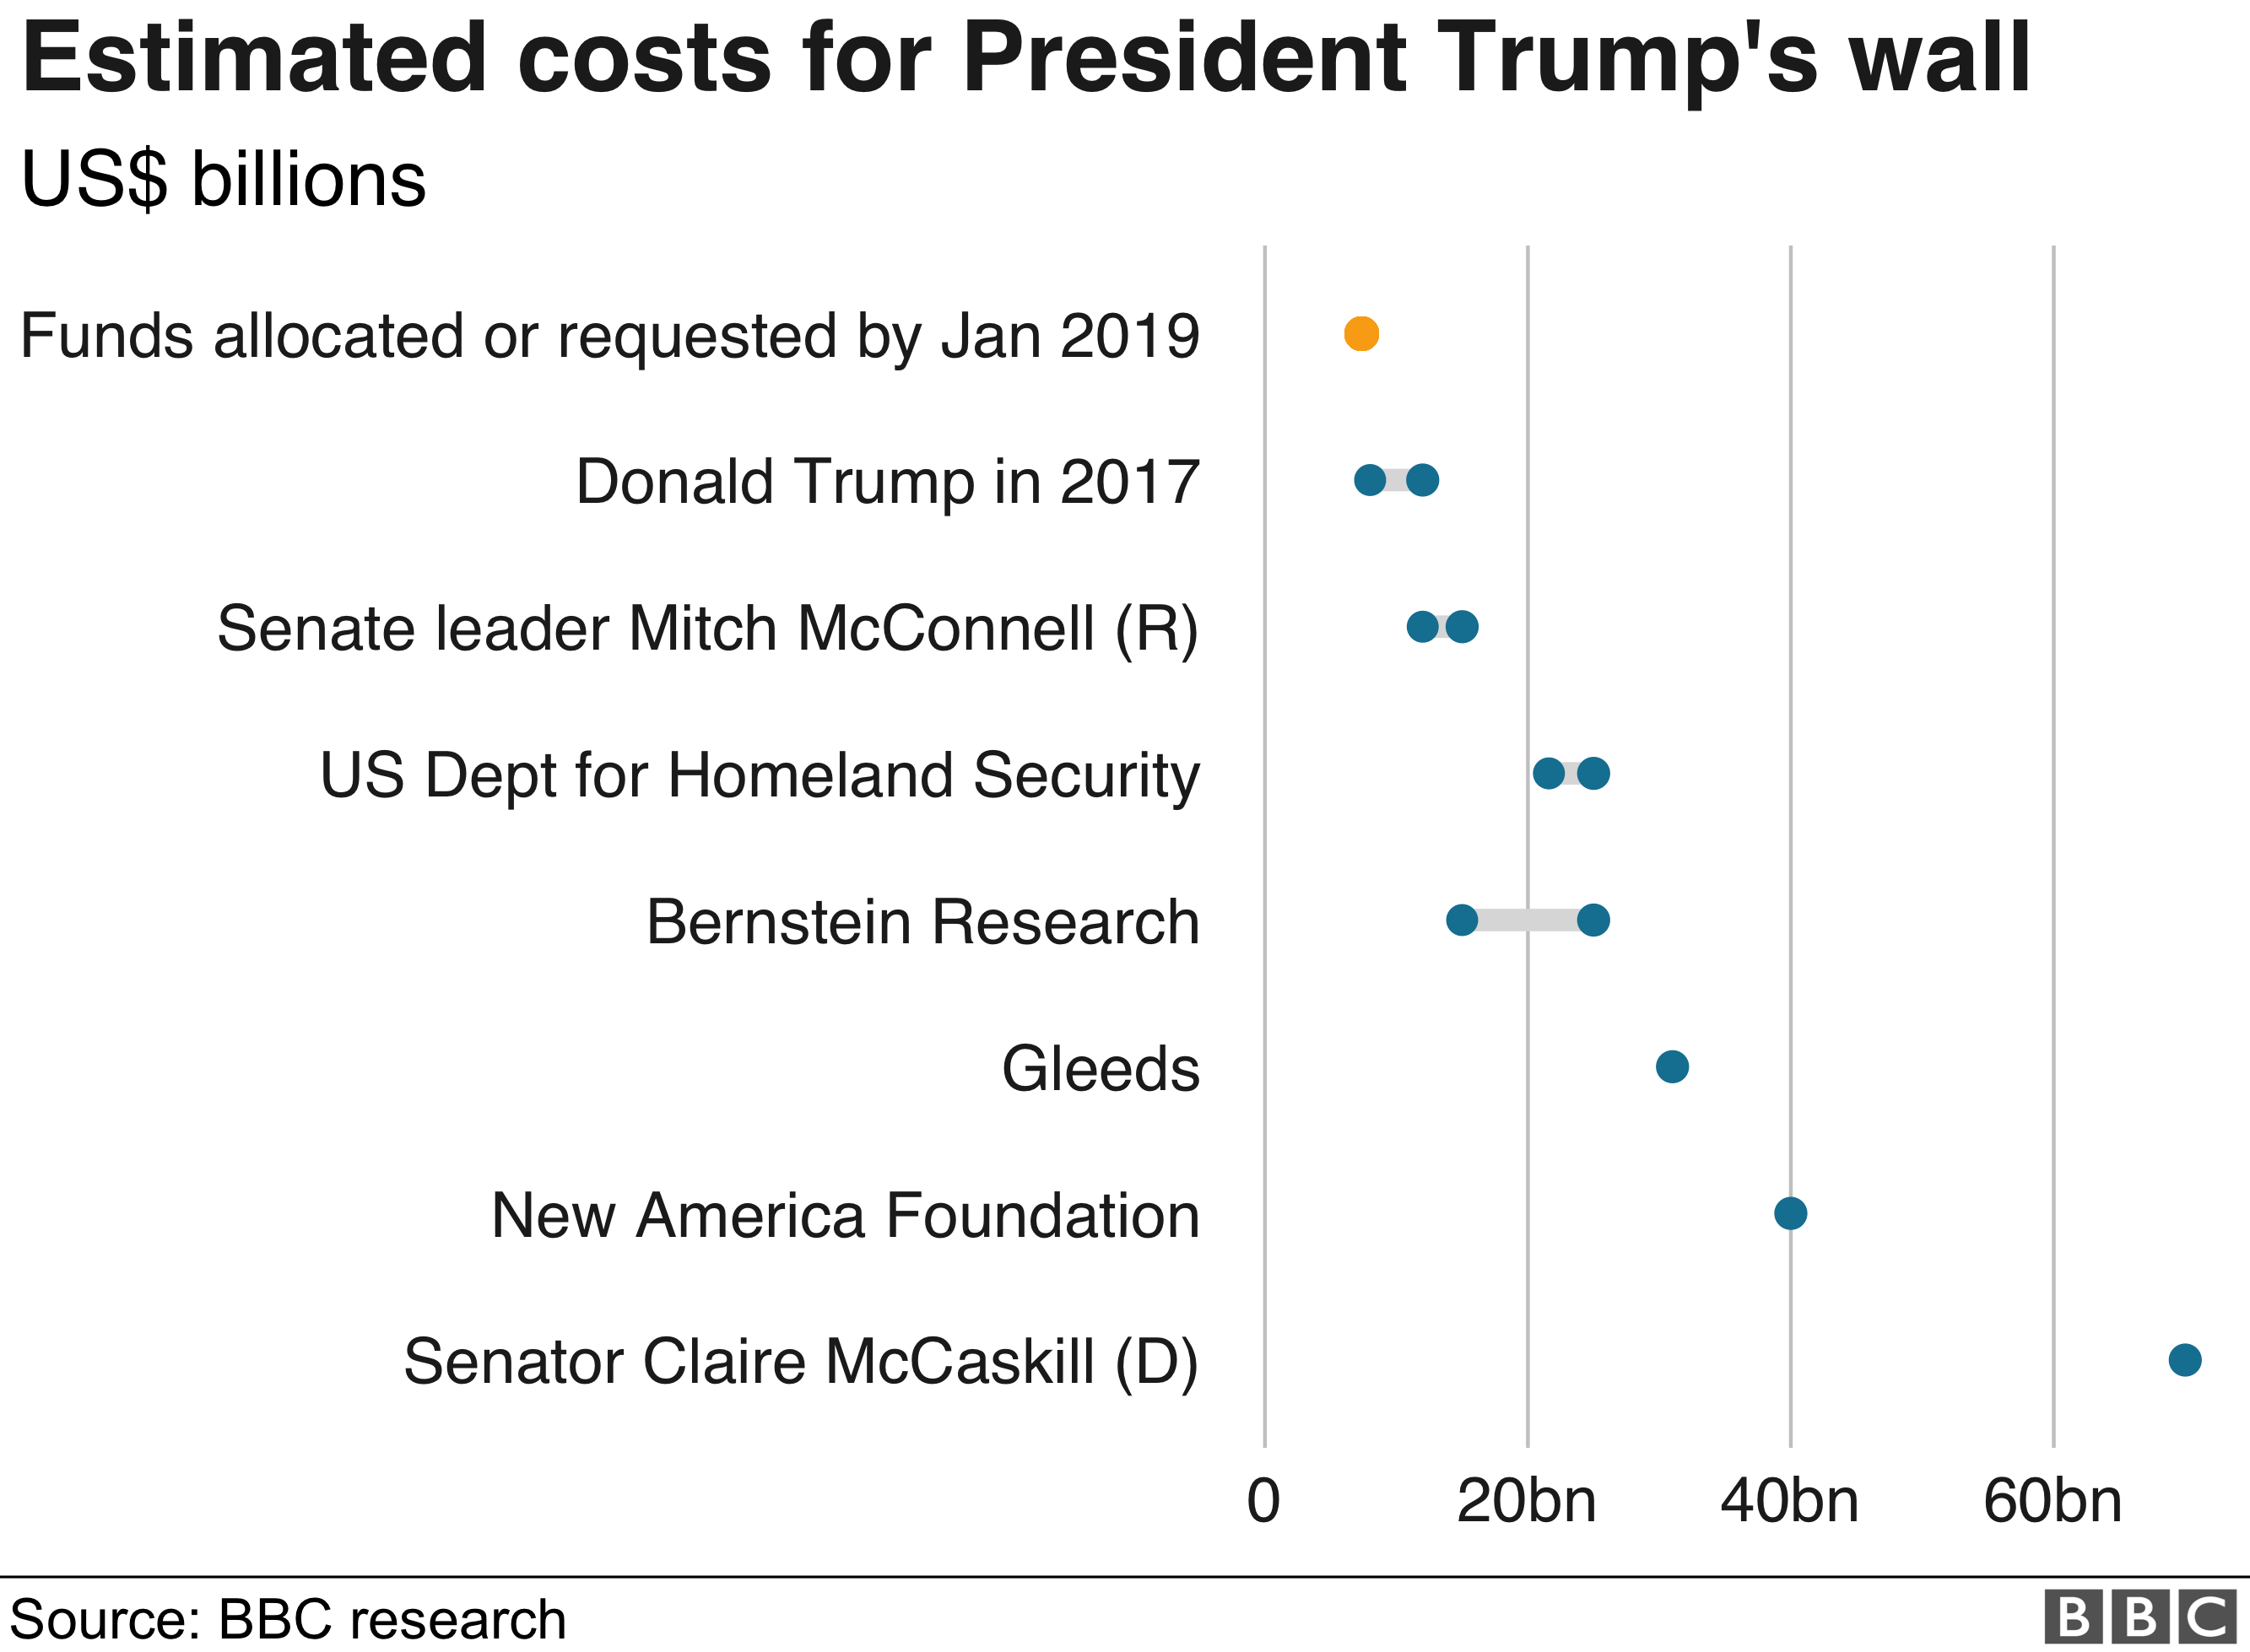 Chart showing estimated costs for President Trump's wall